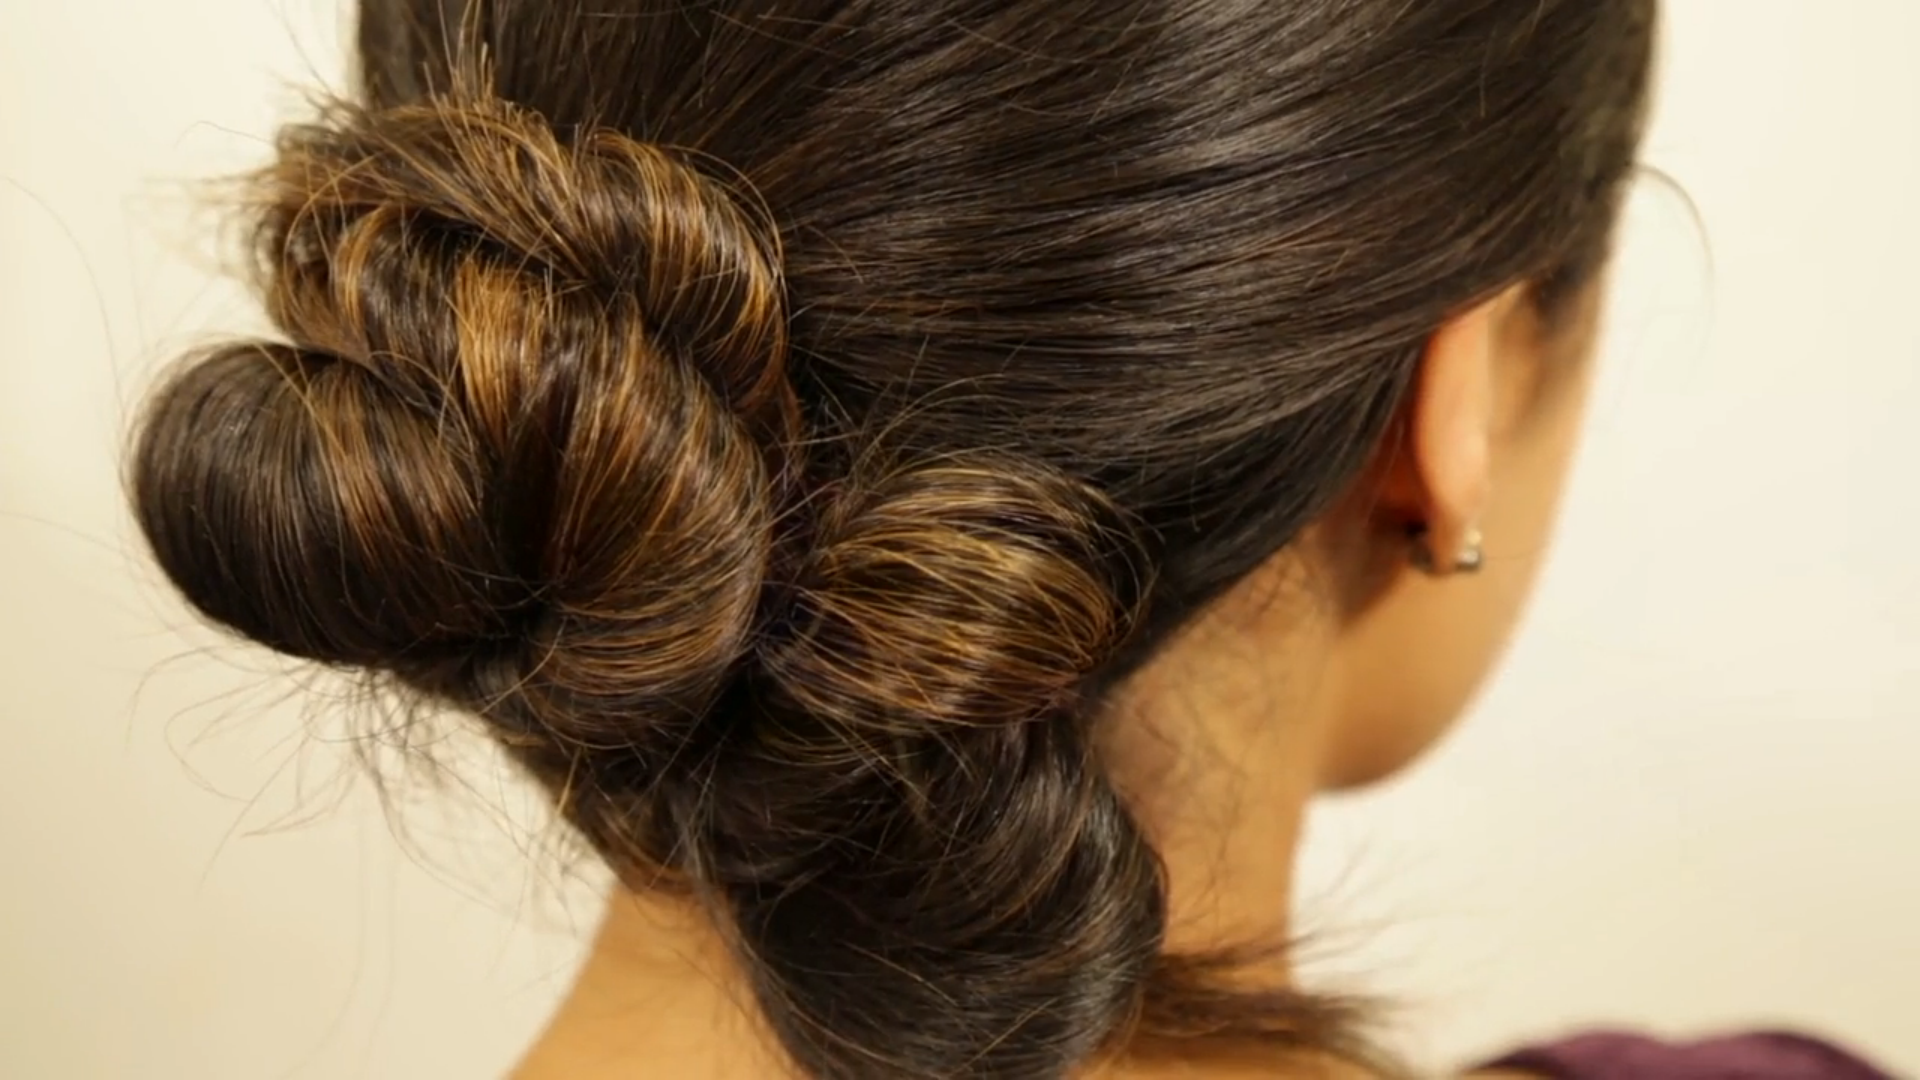 Quick and Easy Hair: The Knotted Updo